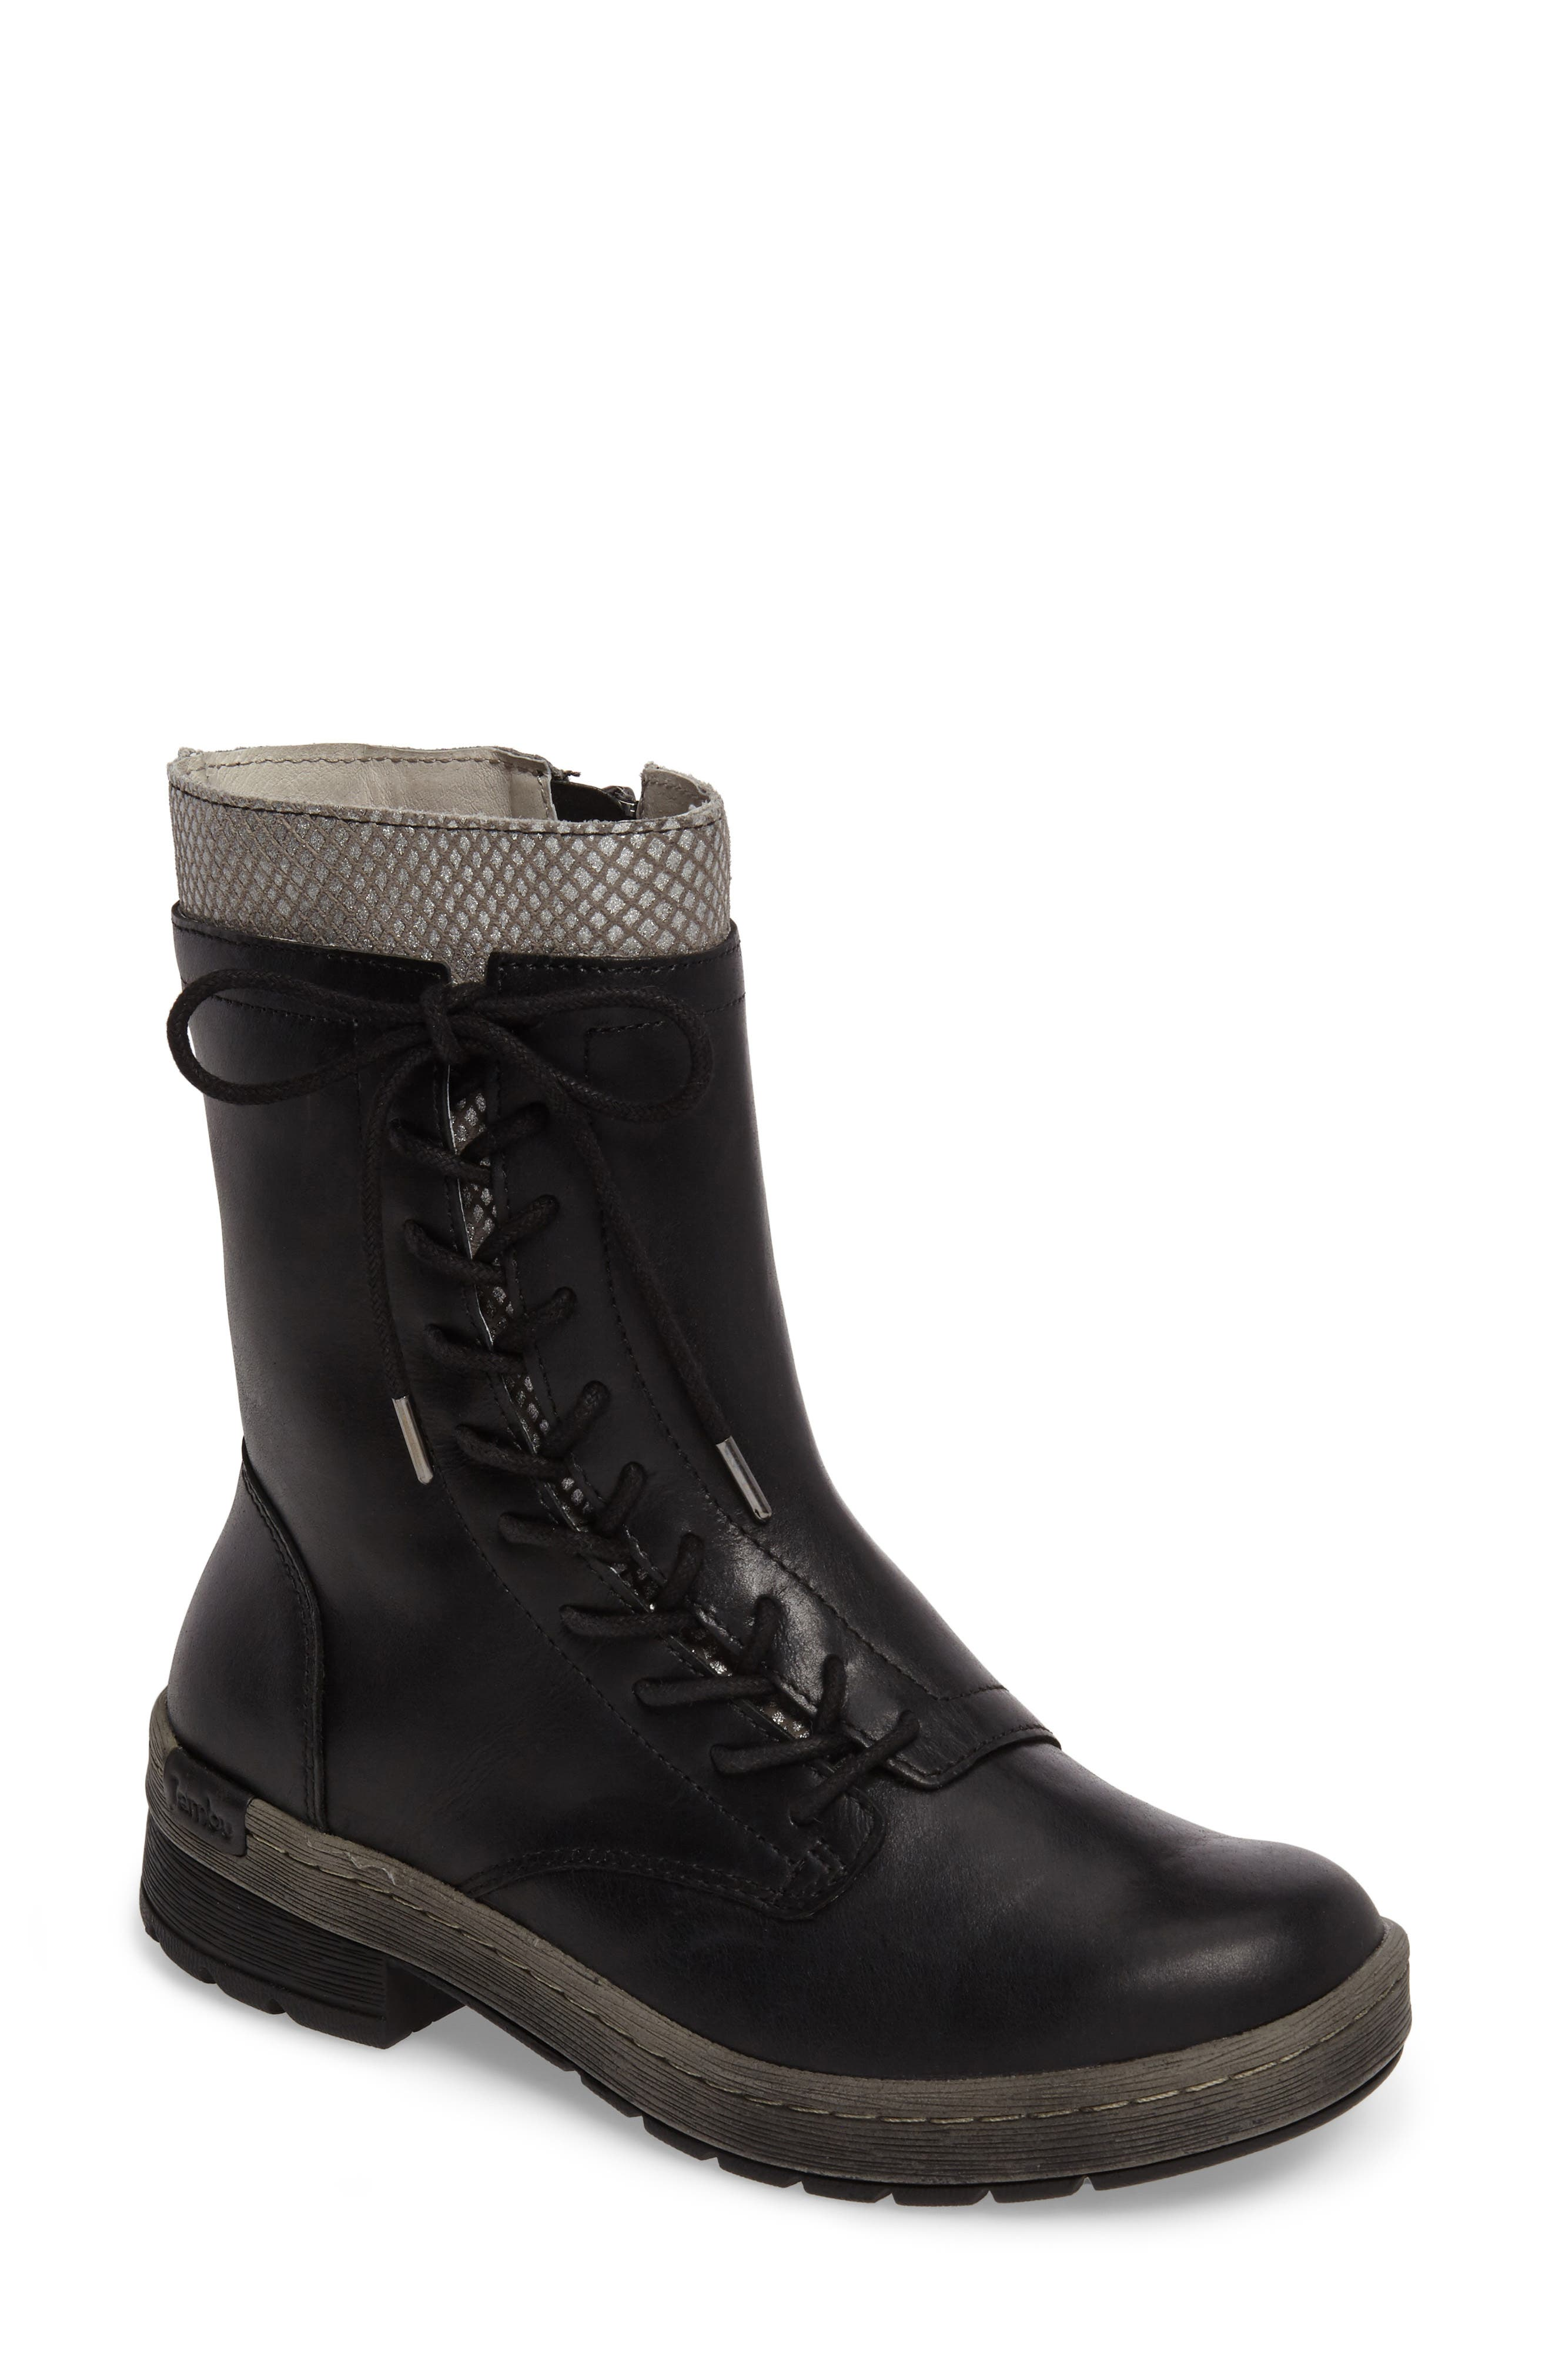 Chestnut Lace-Up Water Resistant Boot,                         Main,                         color, 001